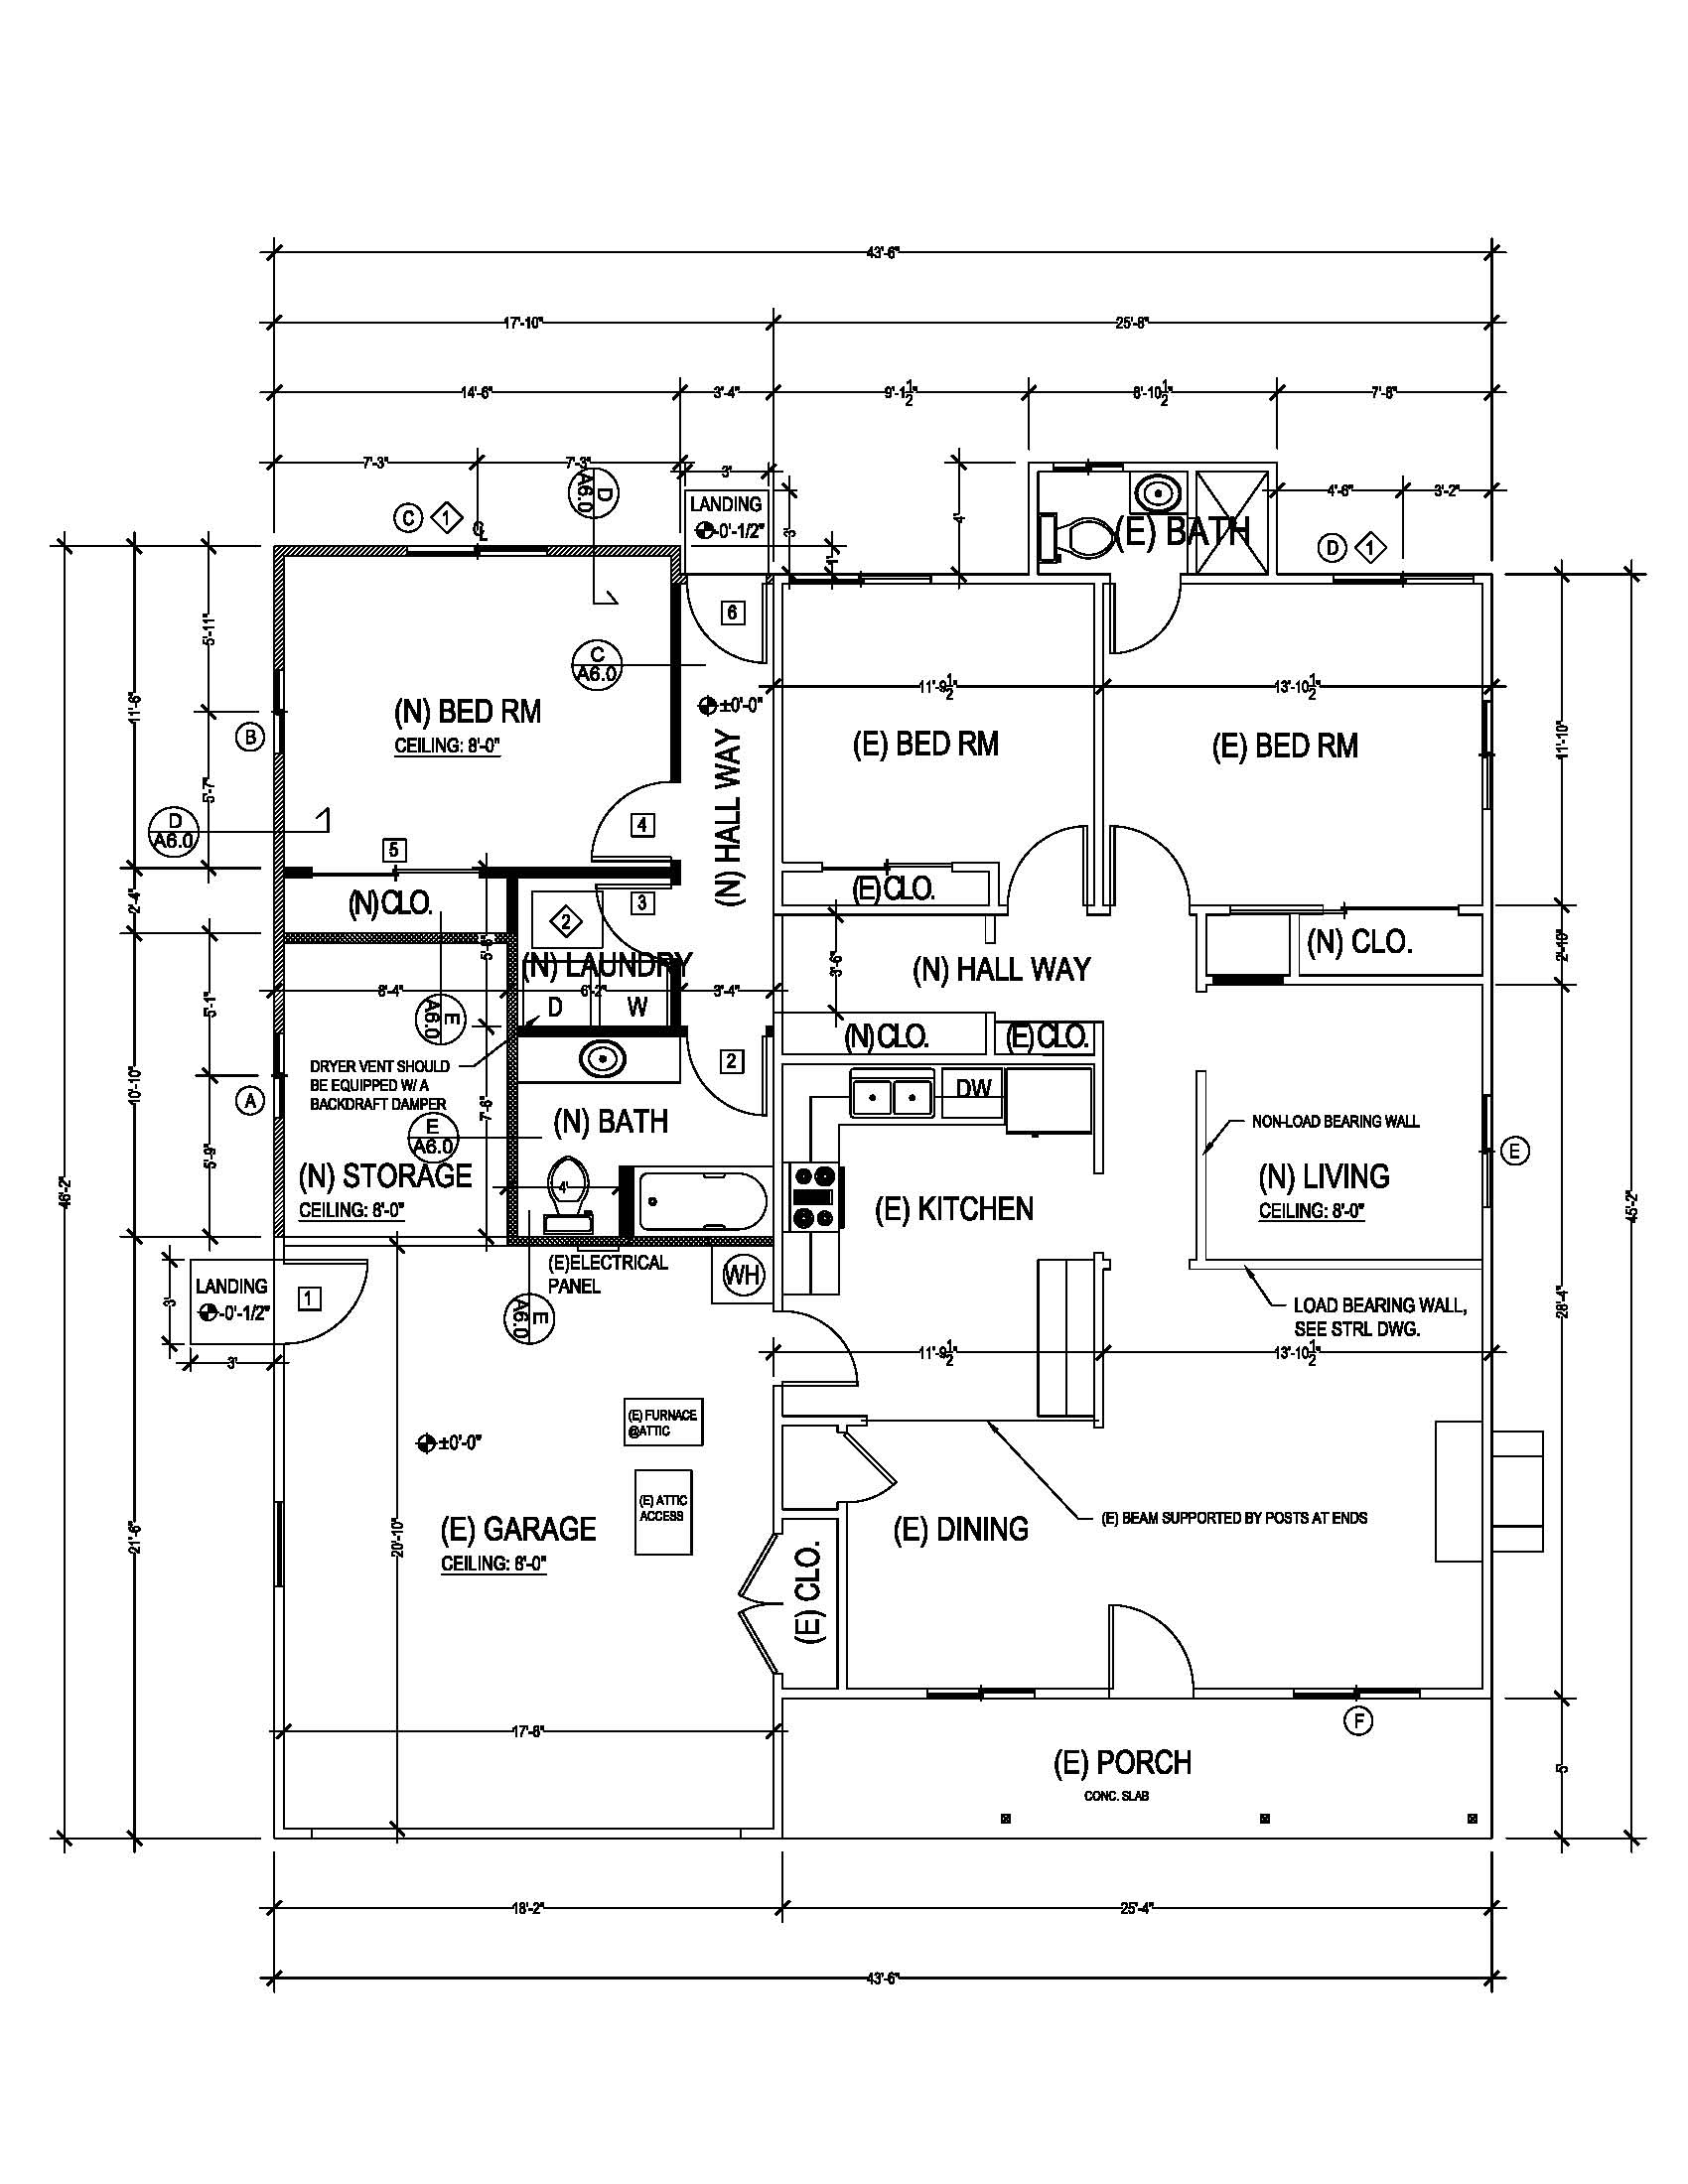 Home Residential building plans